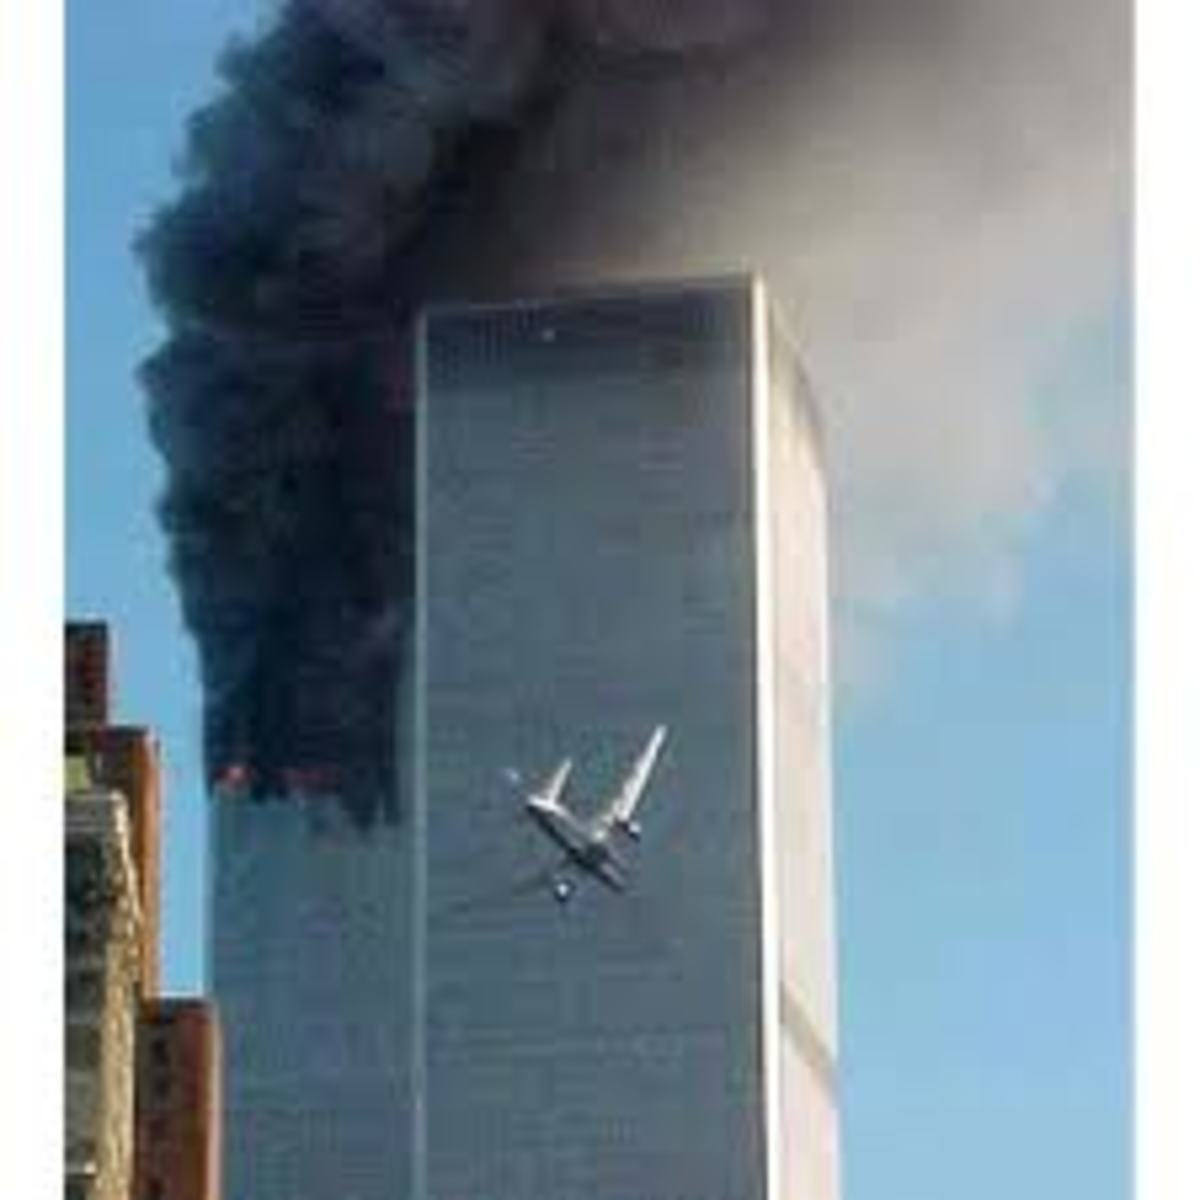 This is the event that has destroyed world peace and changed the world. This photo was taken, when a second plane driven by the terrorists, is just about to crash on the second tower, in New York.